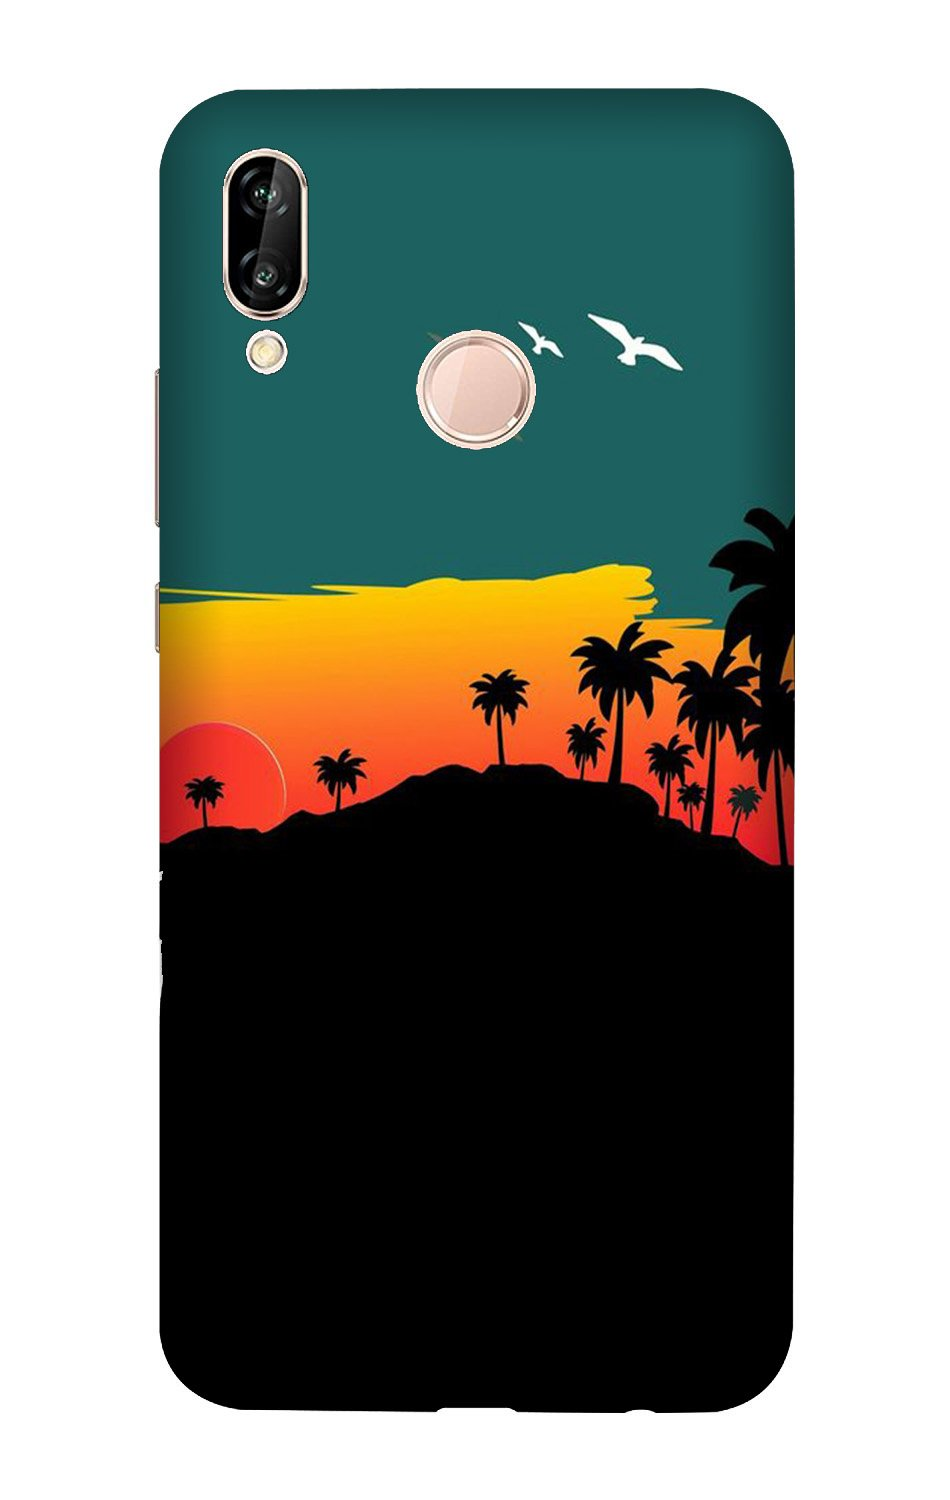 Sky Trees Case for Vivo X21 (Design - 191)